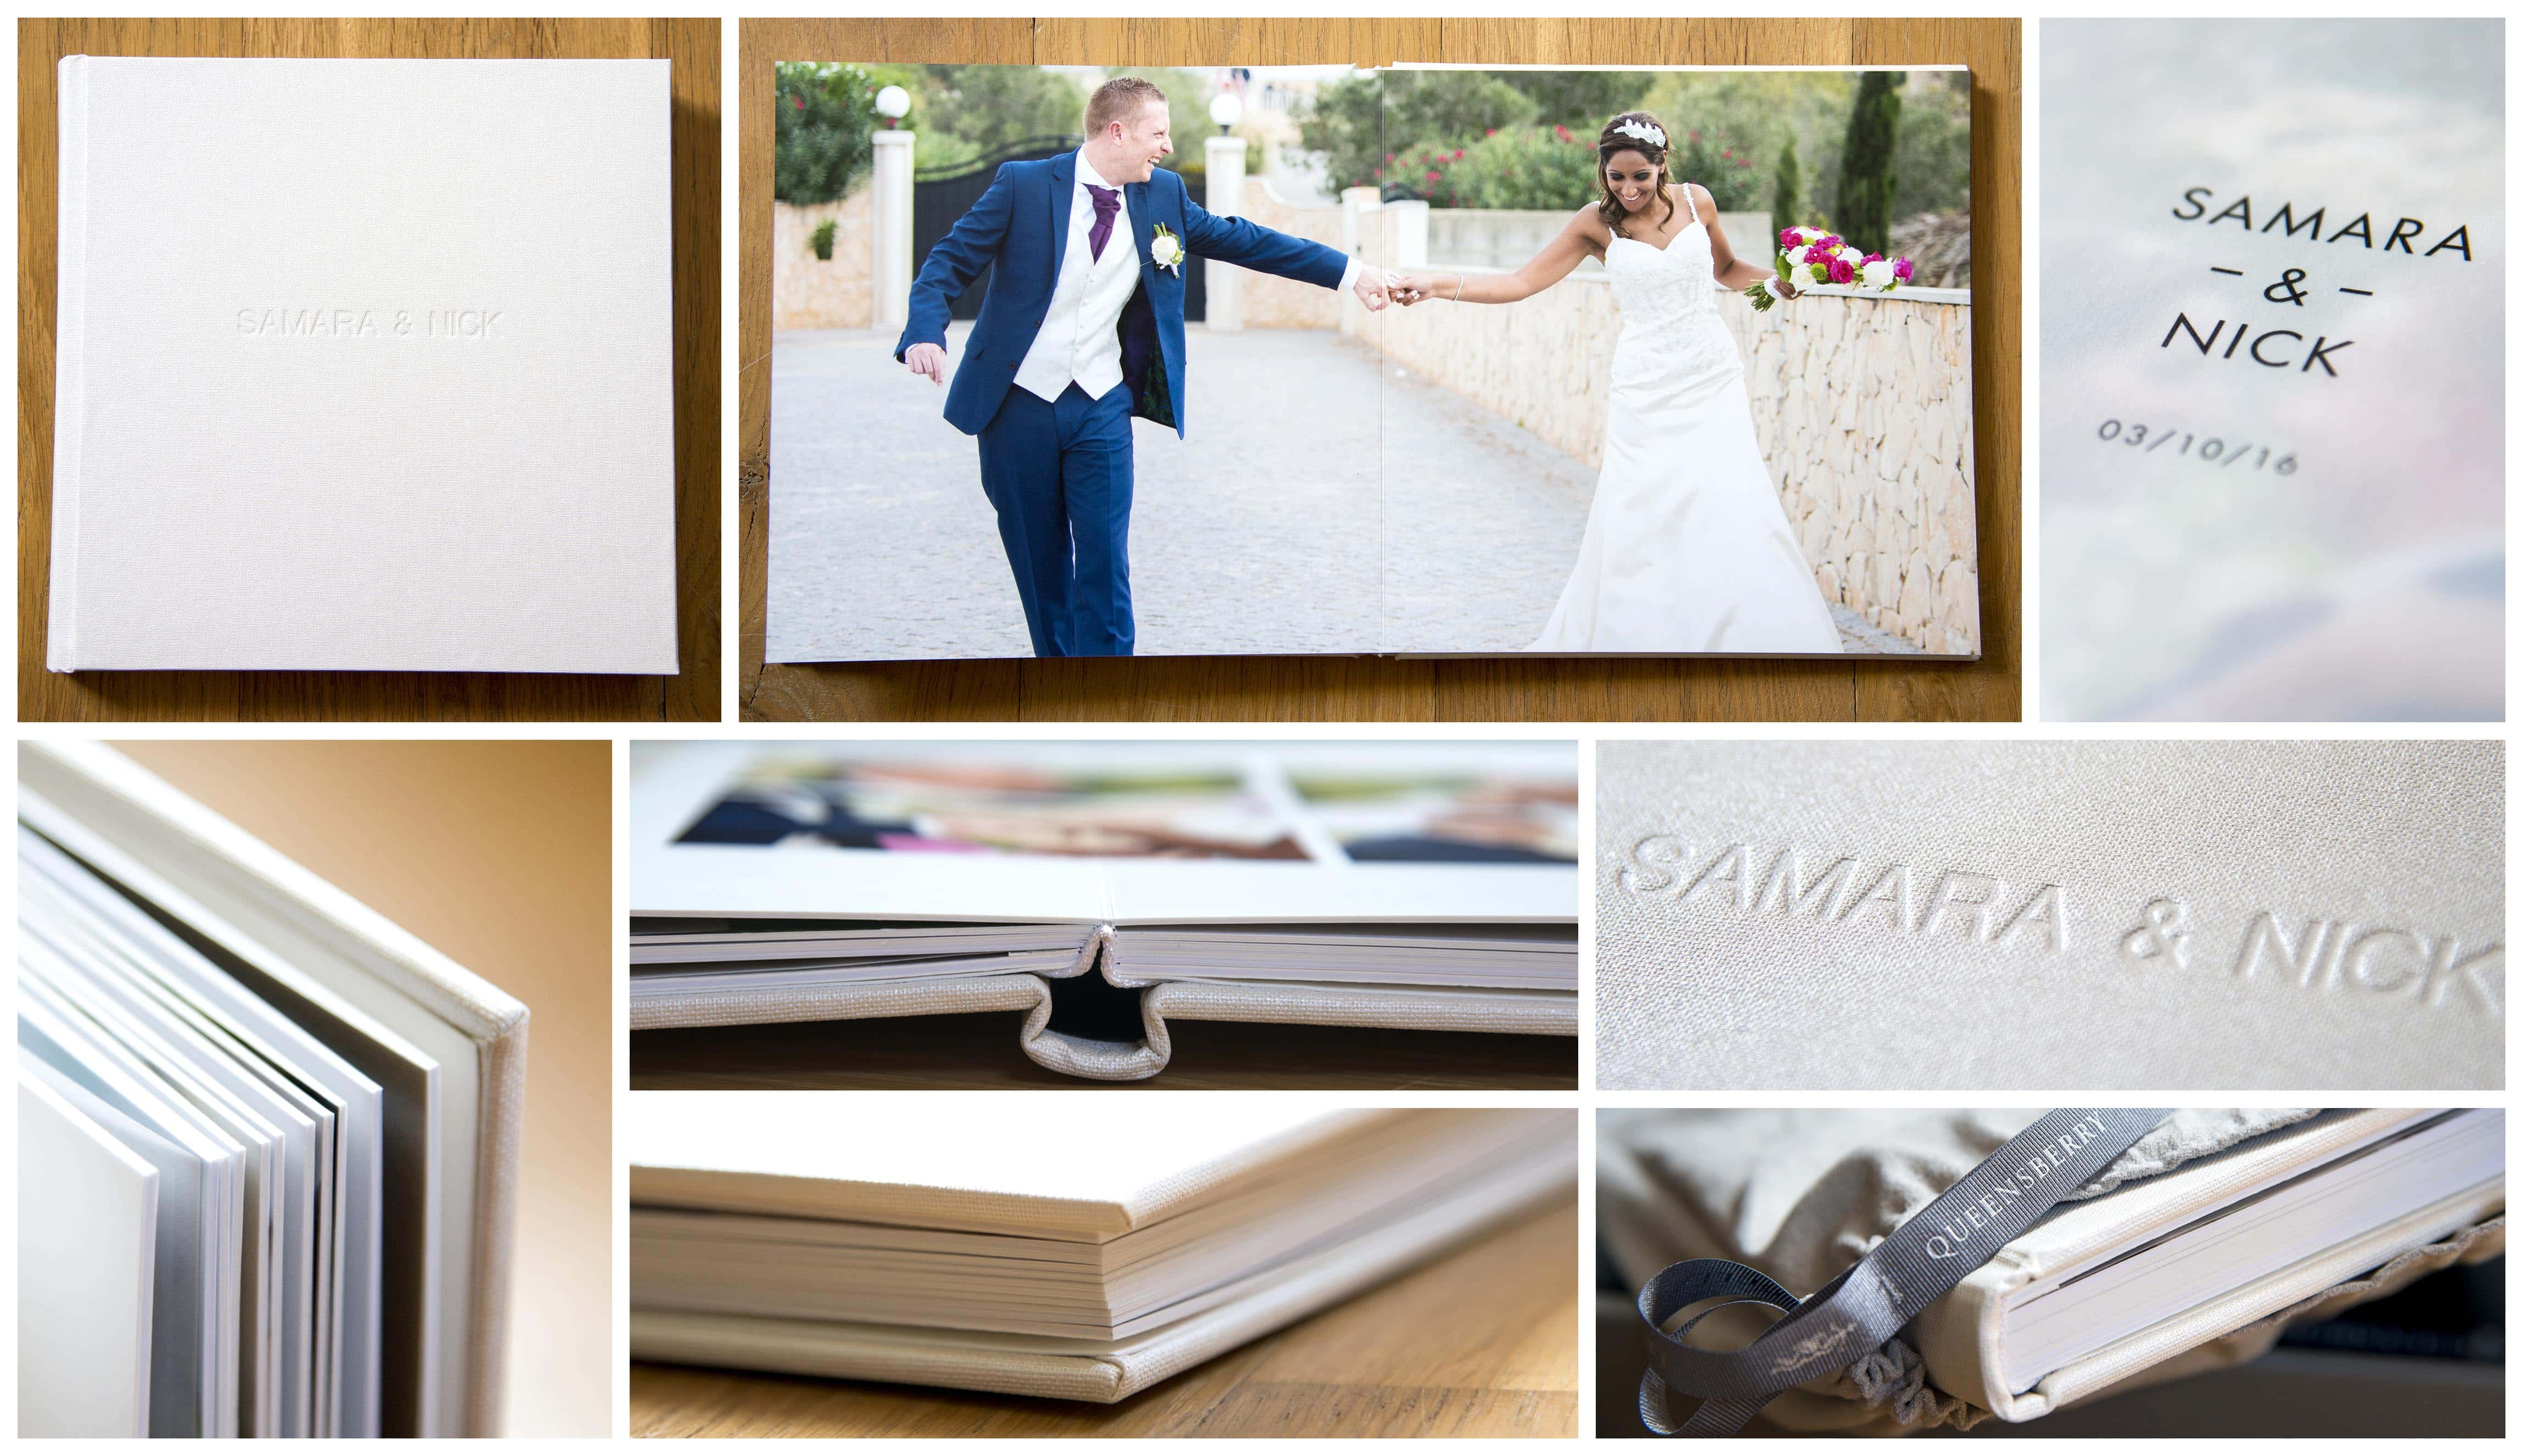 New-Pixels-Wedding-Albums-Flush2